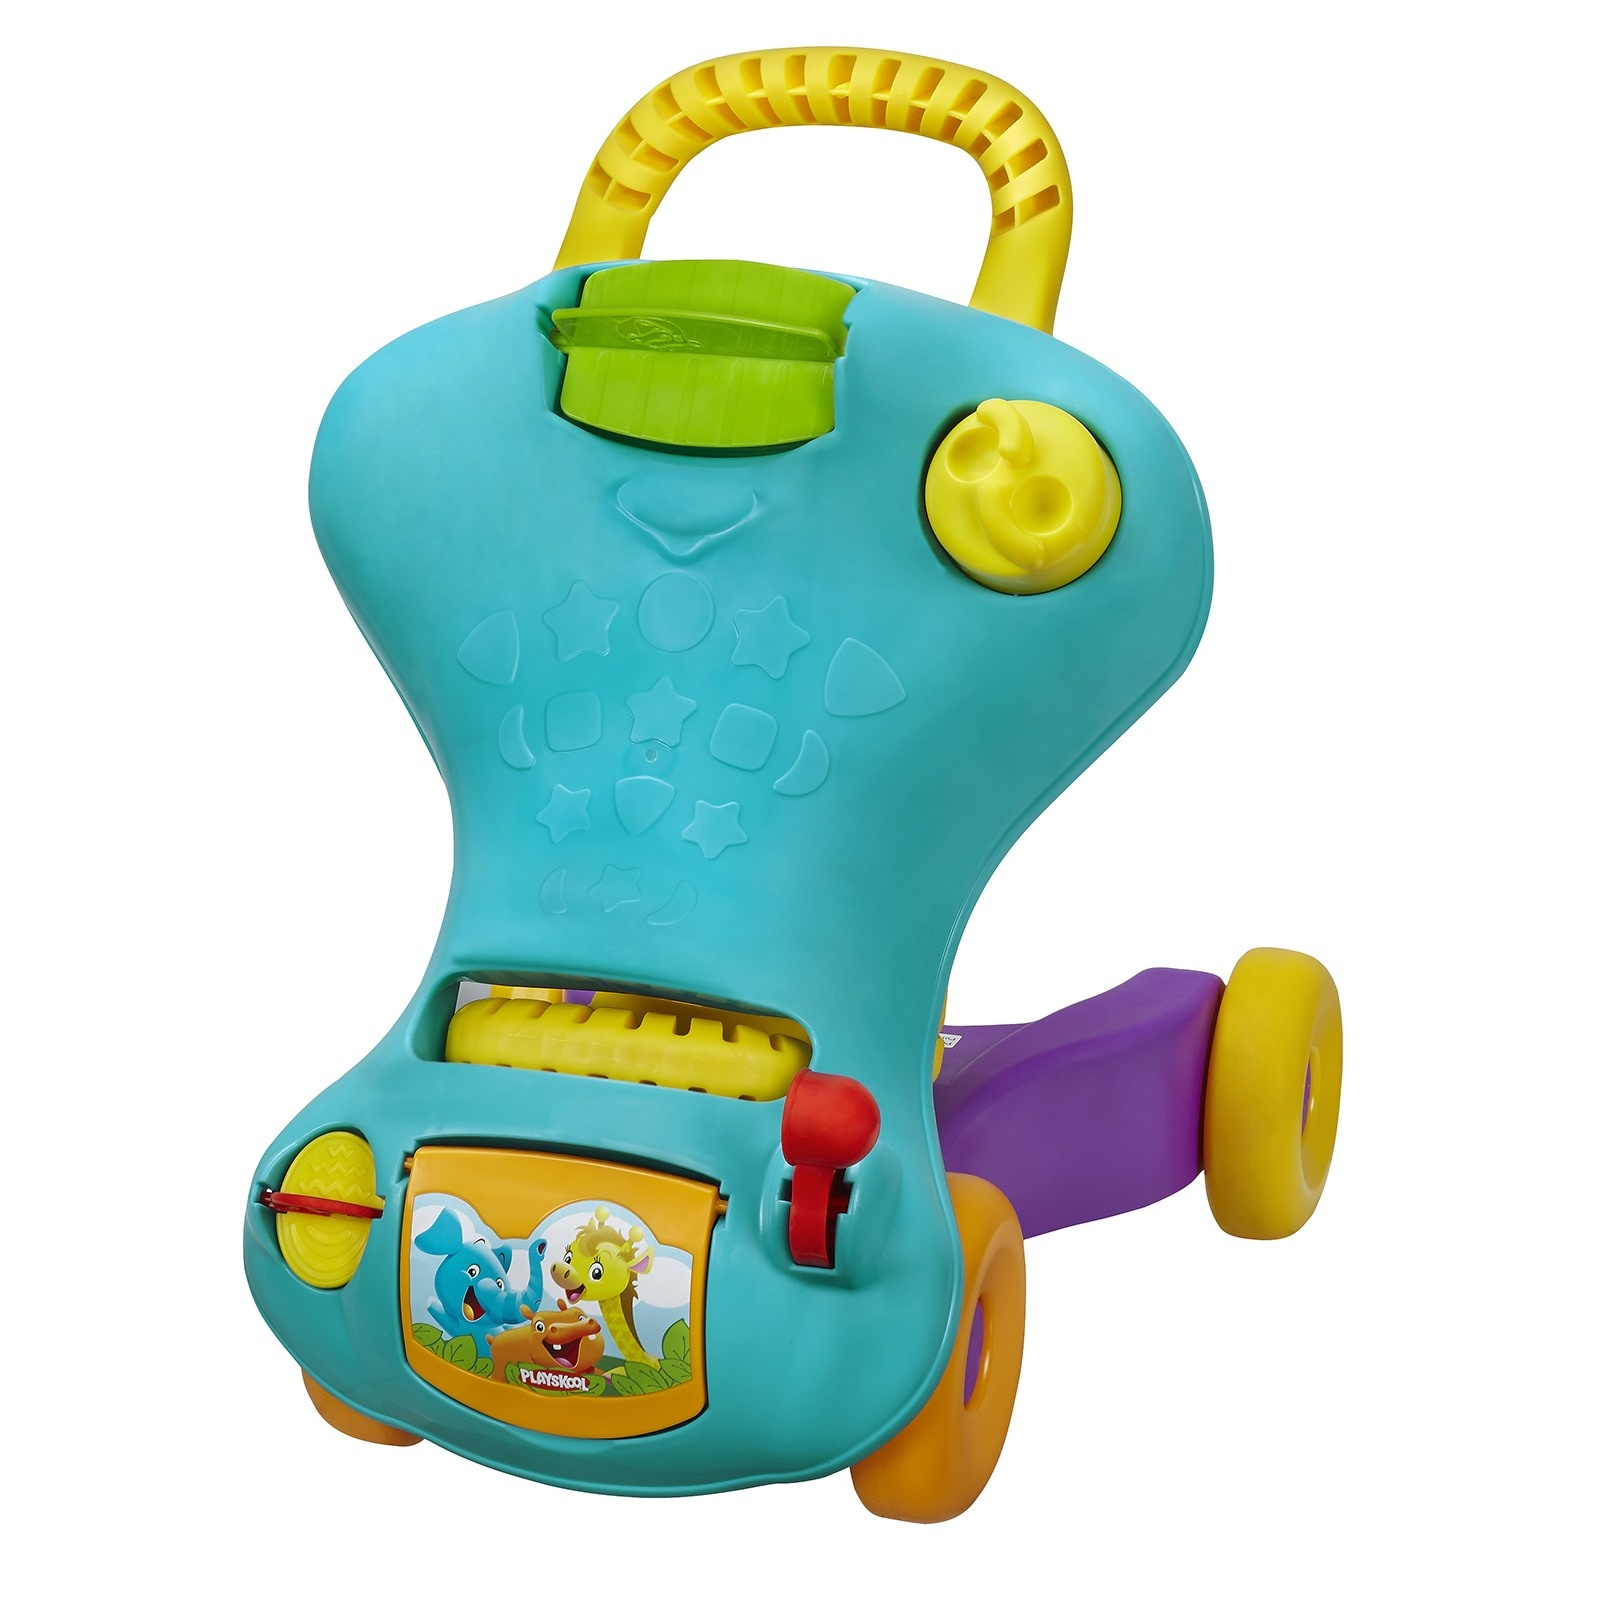 Ebebek Playskool My First Car Talakar Walker For Baby Walker Musical Wheelchair Walker Baby Walker With Wheel